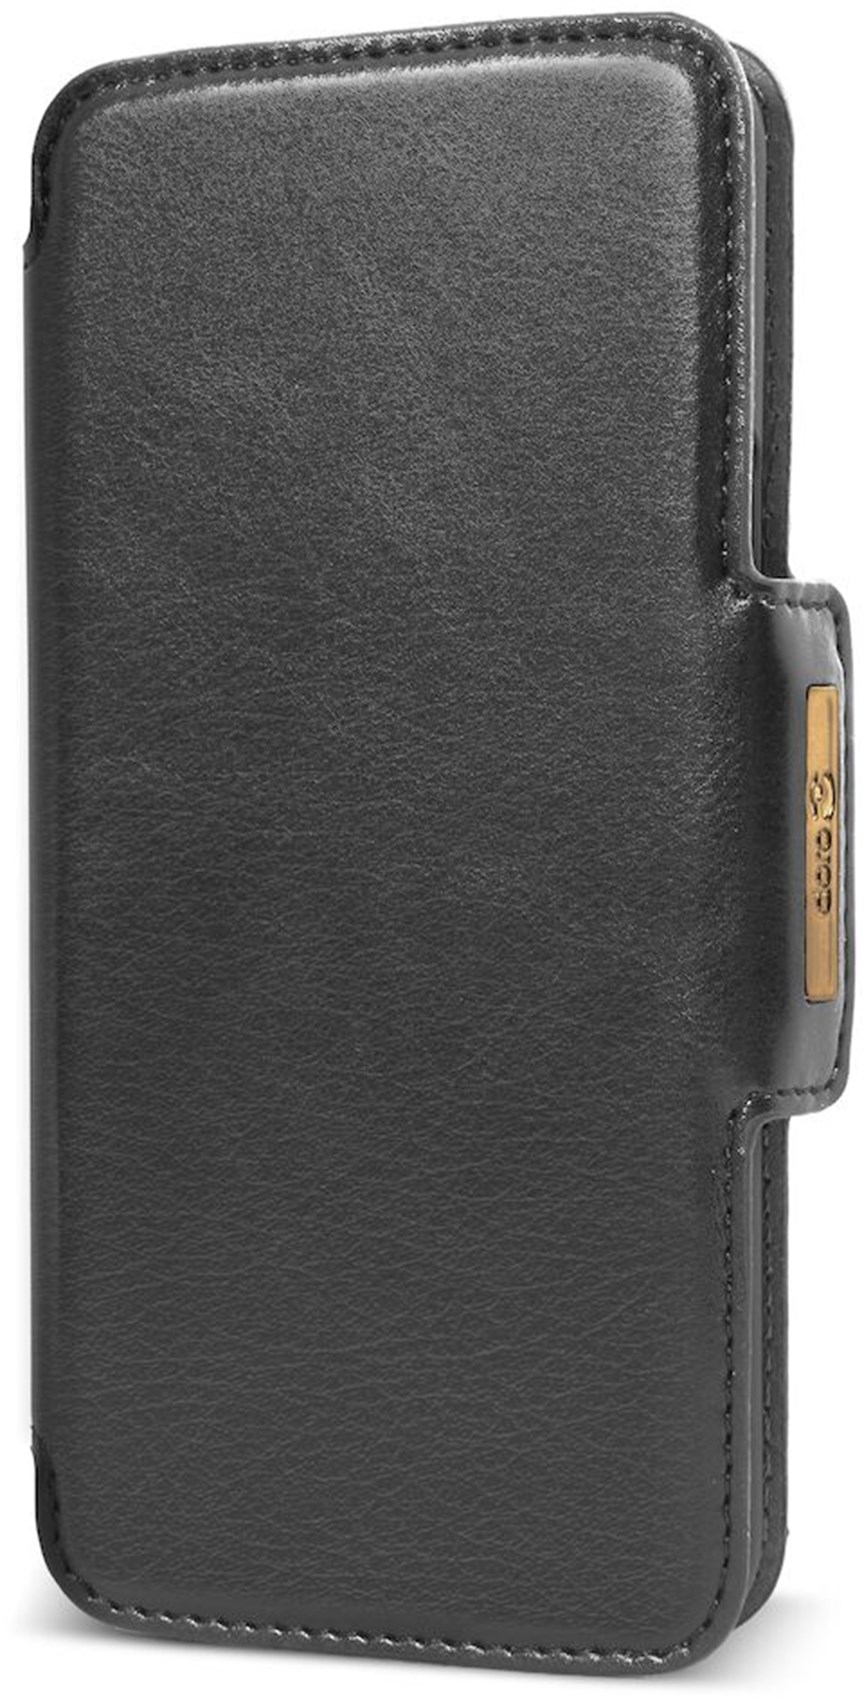 Doro Wallet Case 8080, black